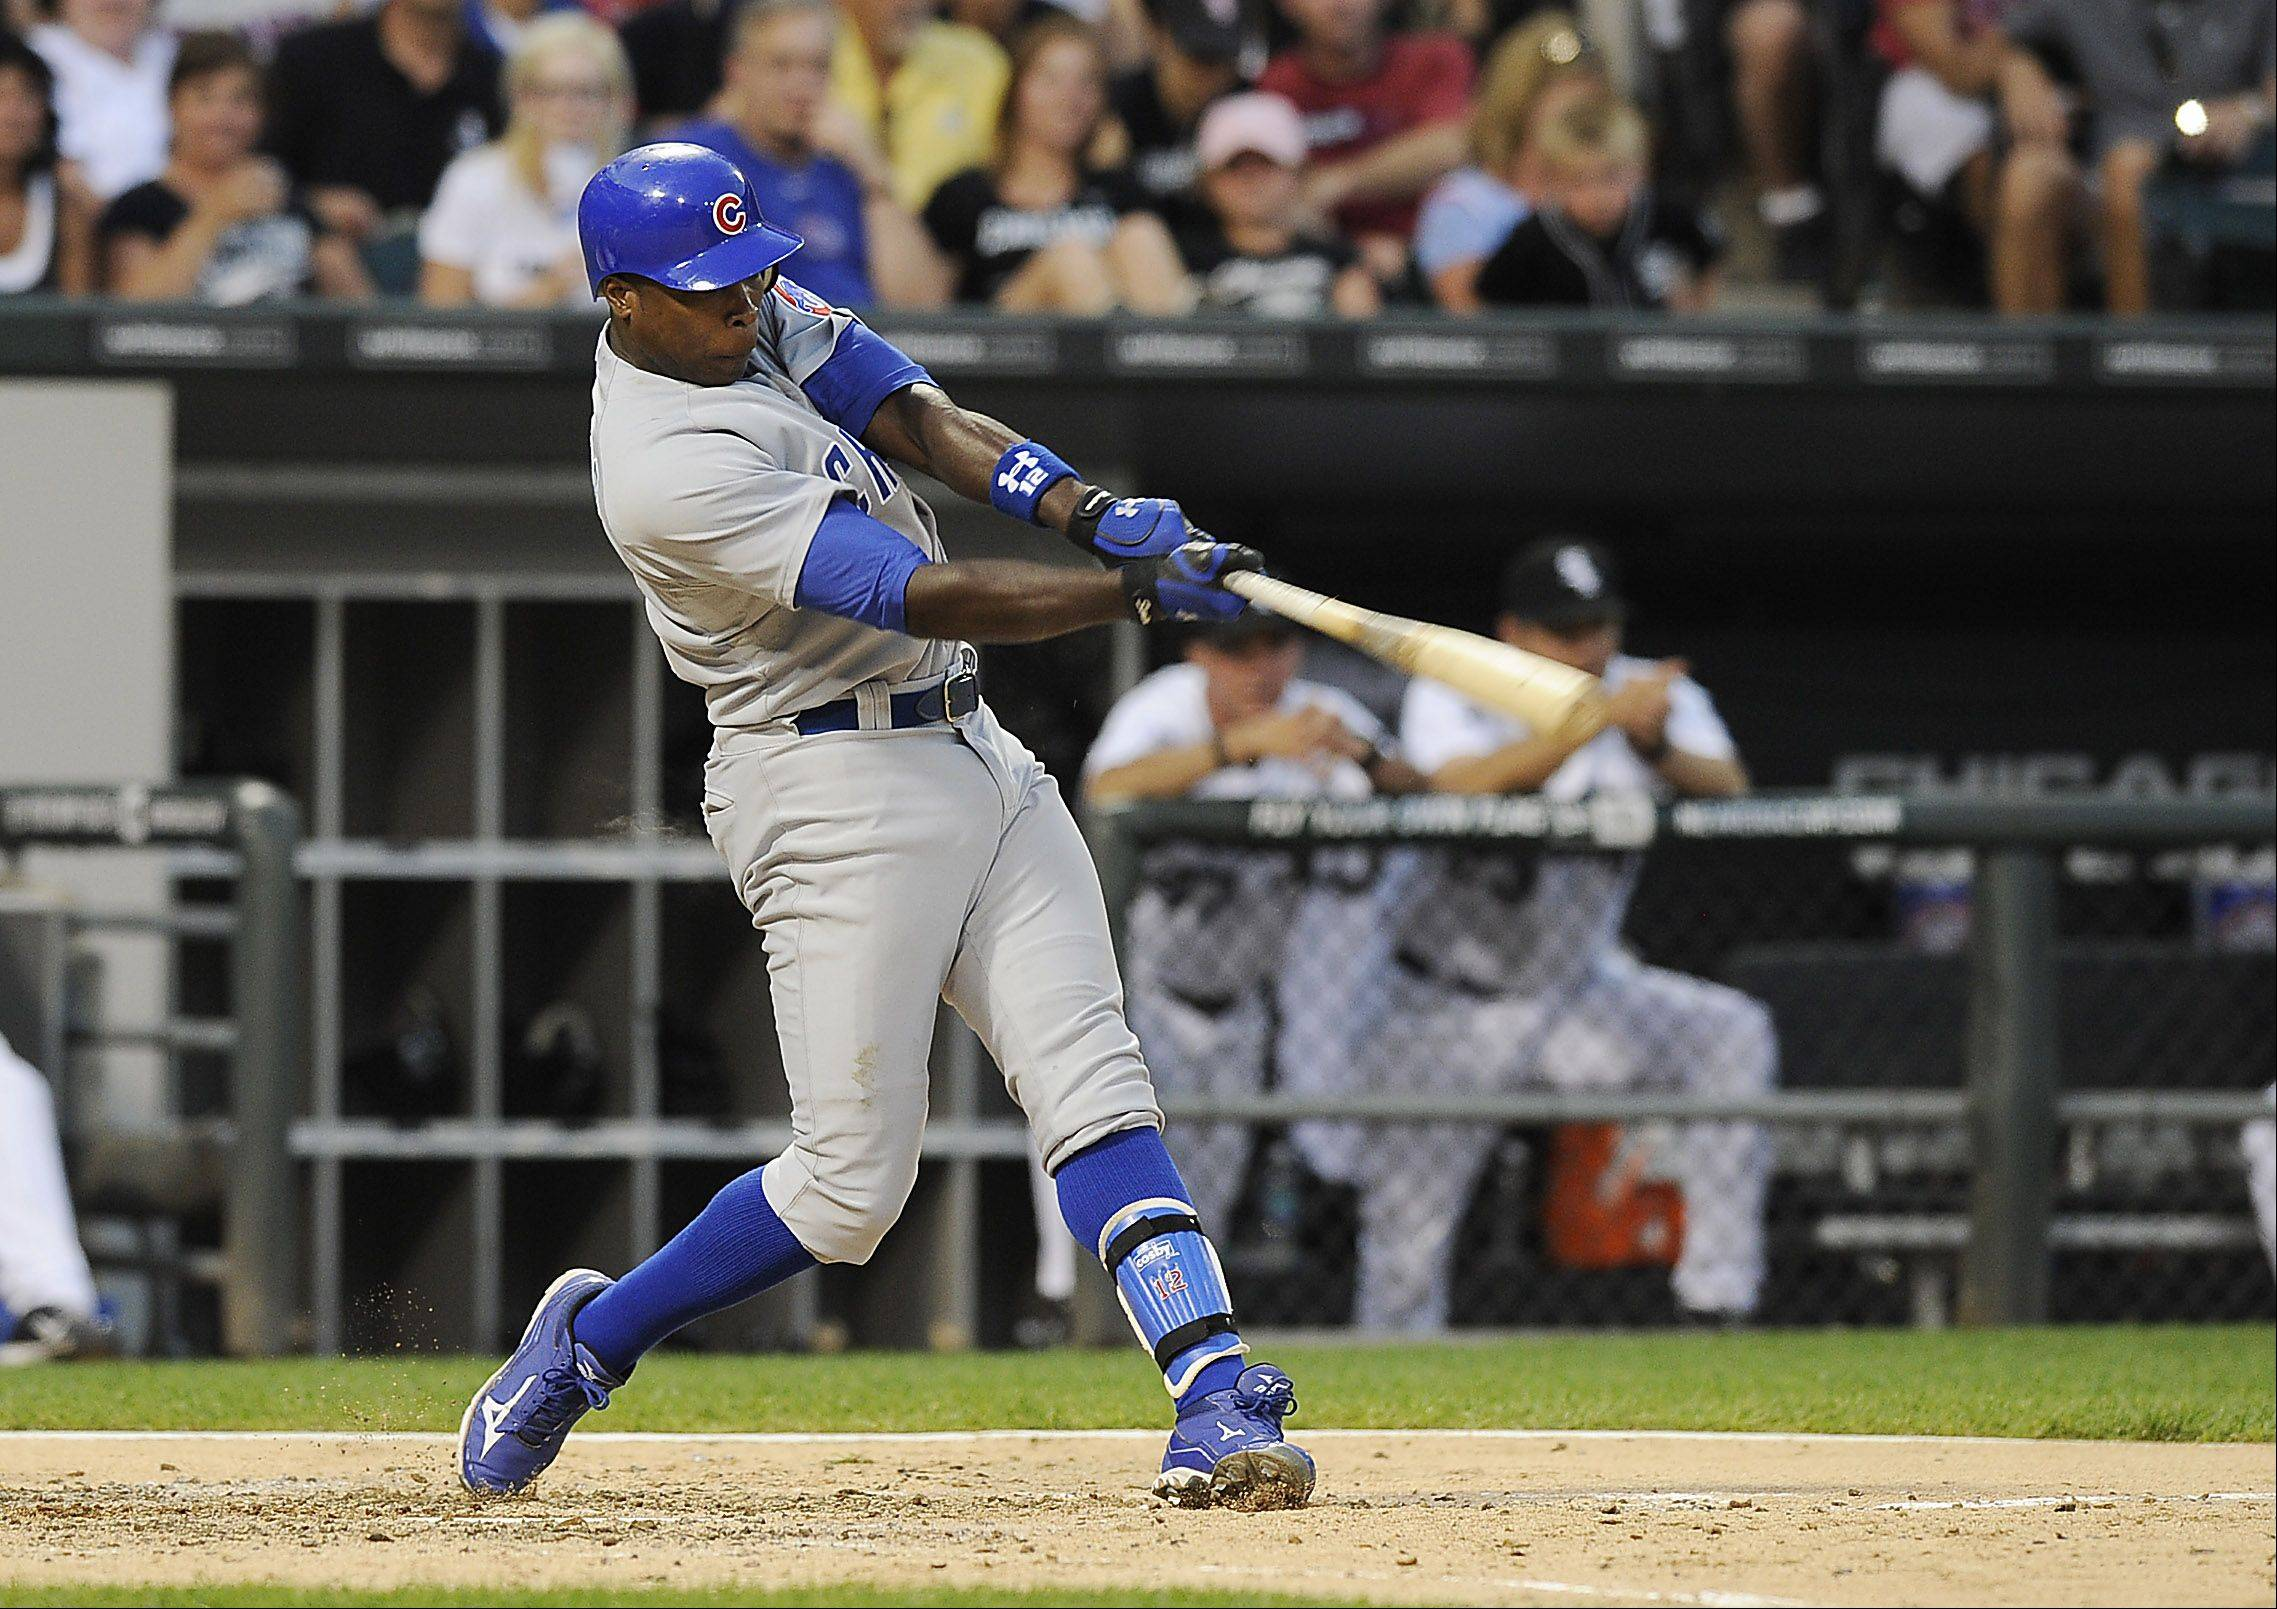 "@Caption credit""Mark Welsh/mwelsh@dailyherald.com/2012 fileVeteran slugger Alfonso Soriano had 32 home runs and a career-best 108 RBI last season for the Cubs, and the 37-year-old outfielder has two seasons left on his contract."